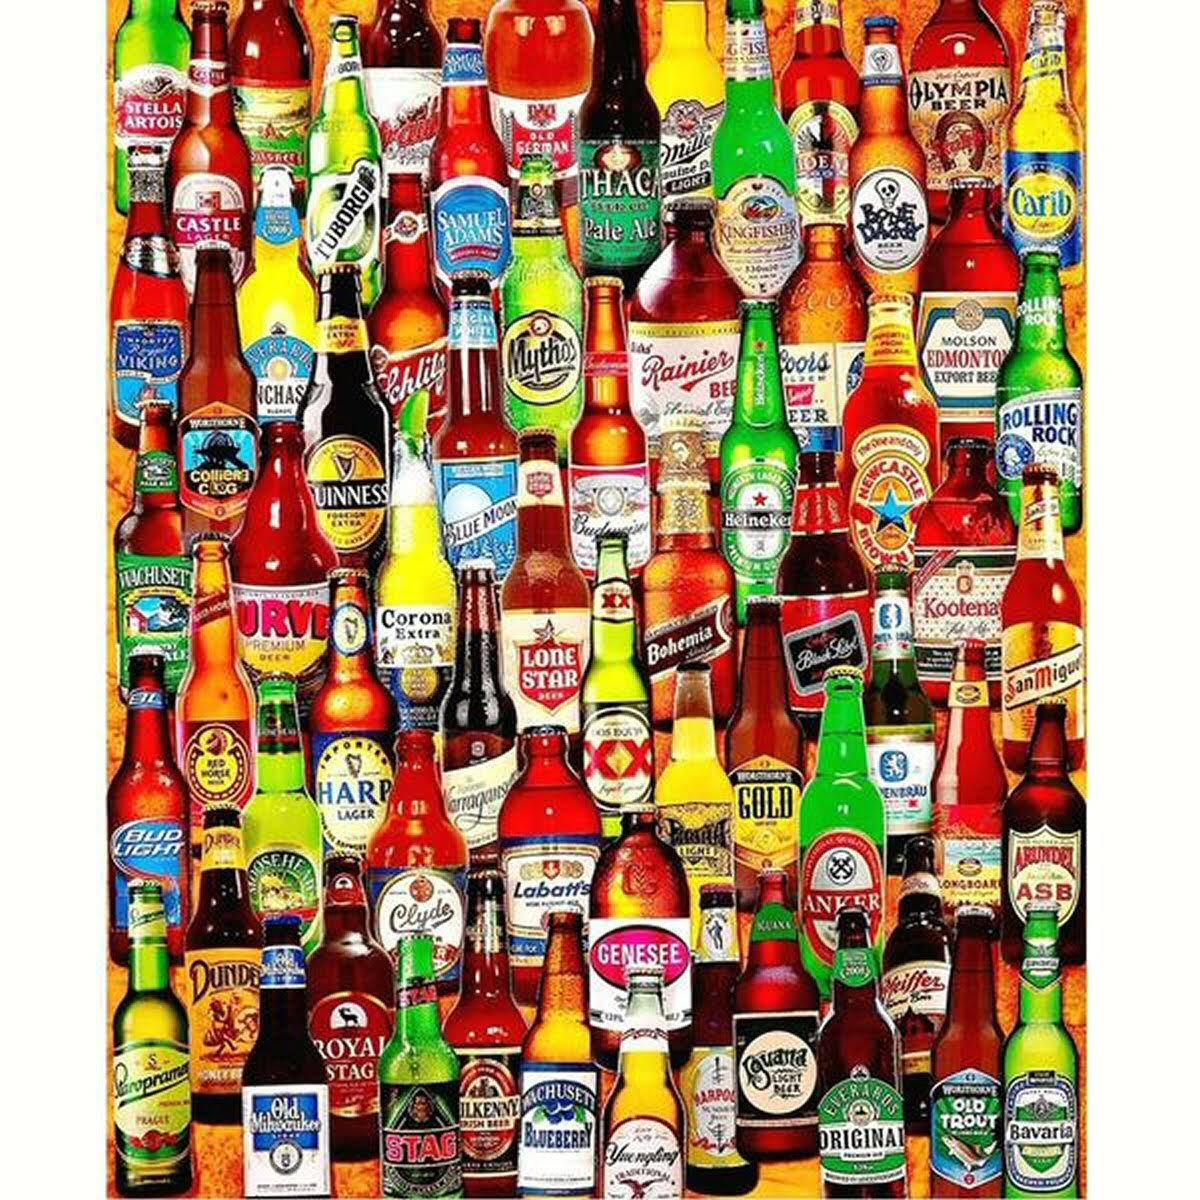 White Mountain Puzzles 99 Bottles of Beer on the Wall 1000-Piece Jigsaw Puzzle - 24in x 30in